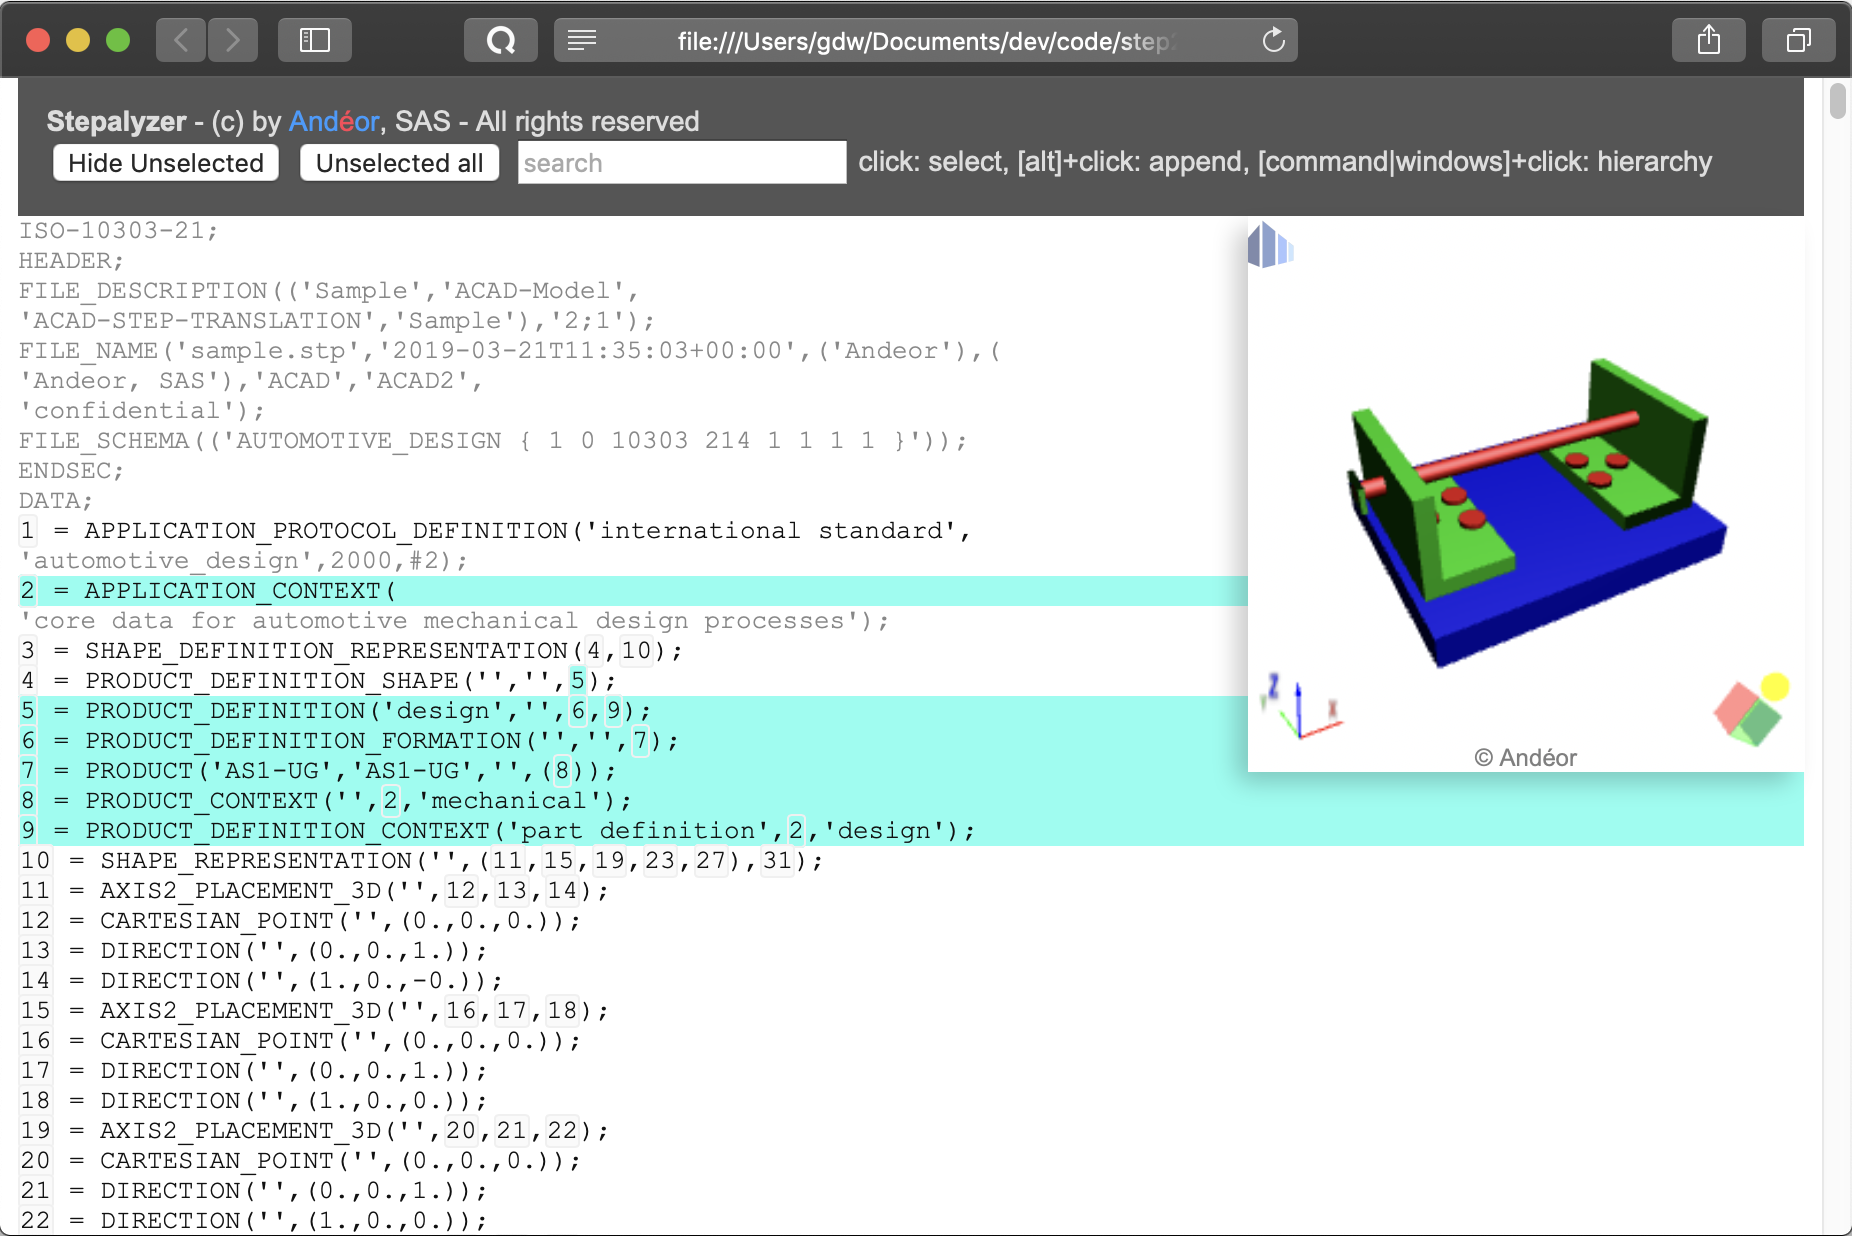 Obtain an interactive analysis Web page with embedded 3D viewer from any Step file.